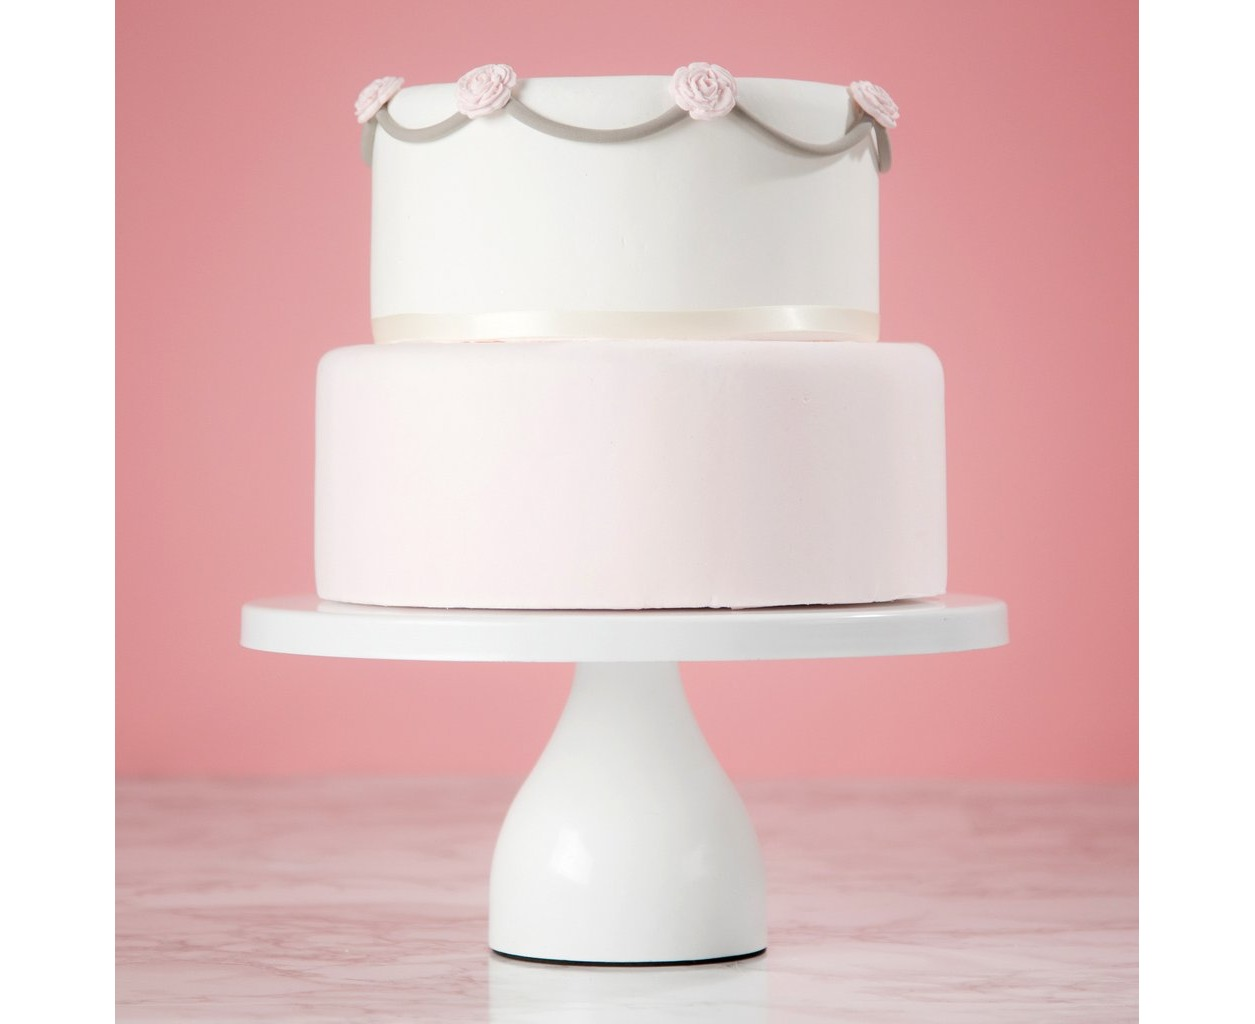 30 cm (12-inch) Round Modern Cake Stand | White | Jocelyn Collection ...